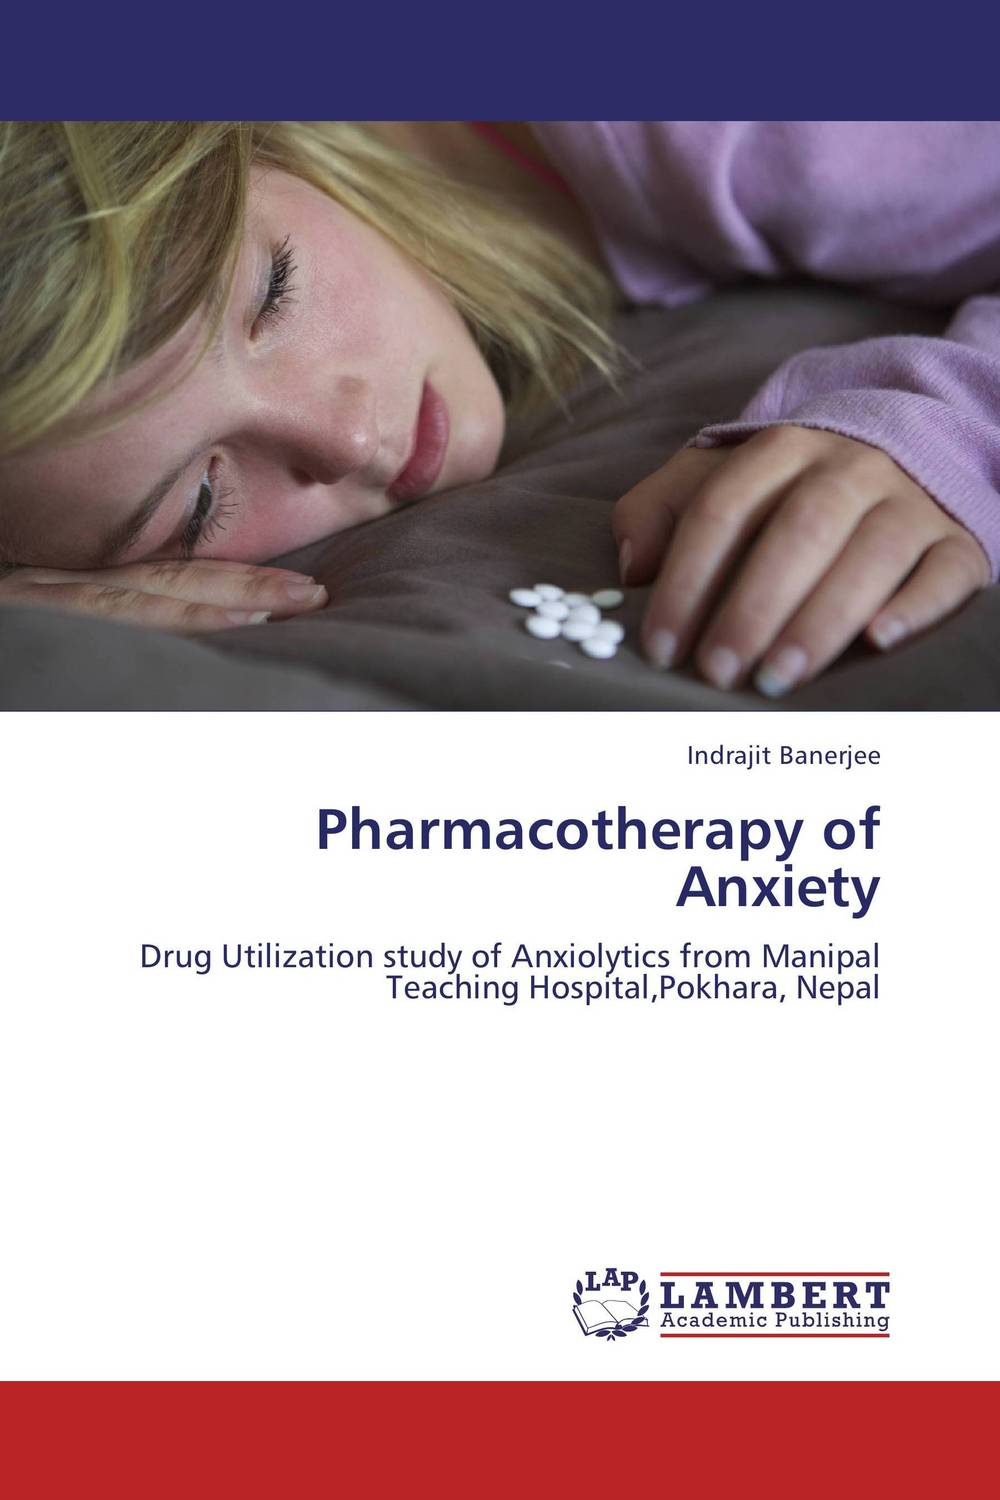 Pharmacotherapy of Anxiety psychiatric disorders in postpartum period